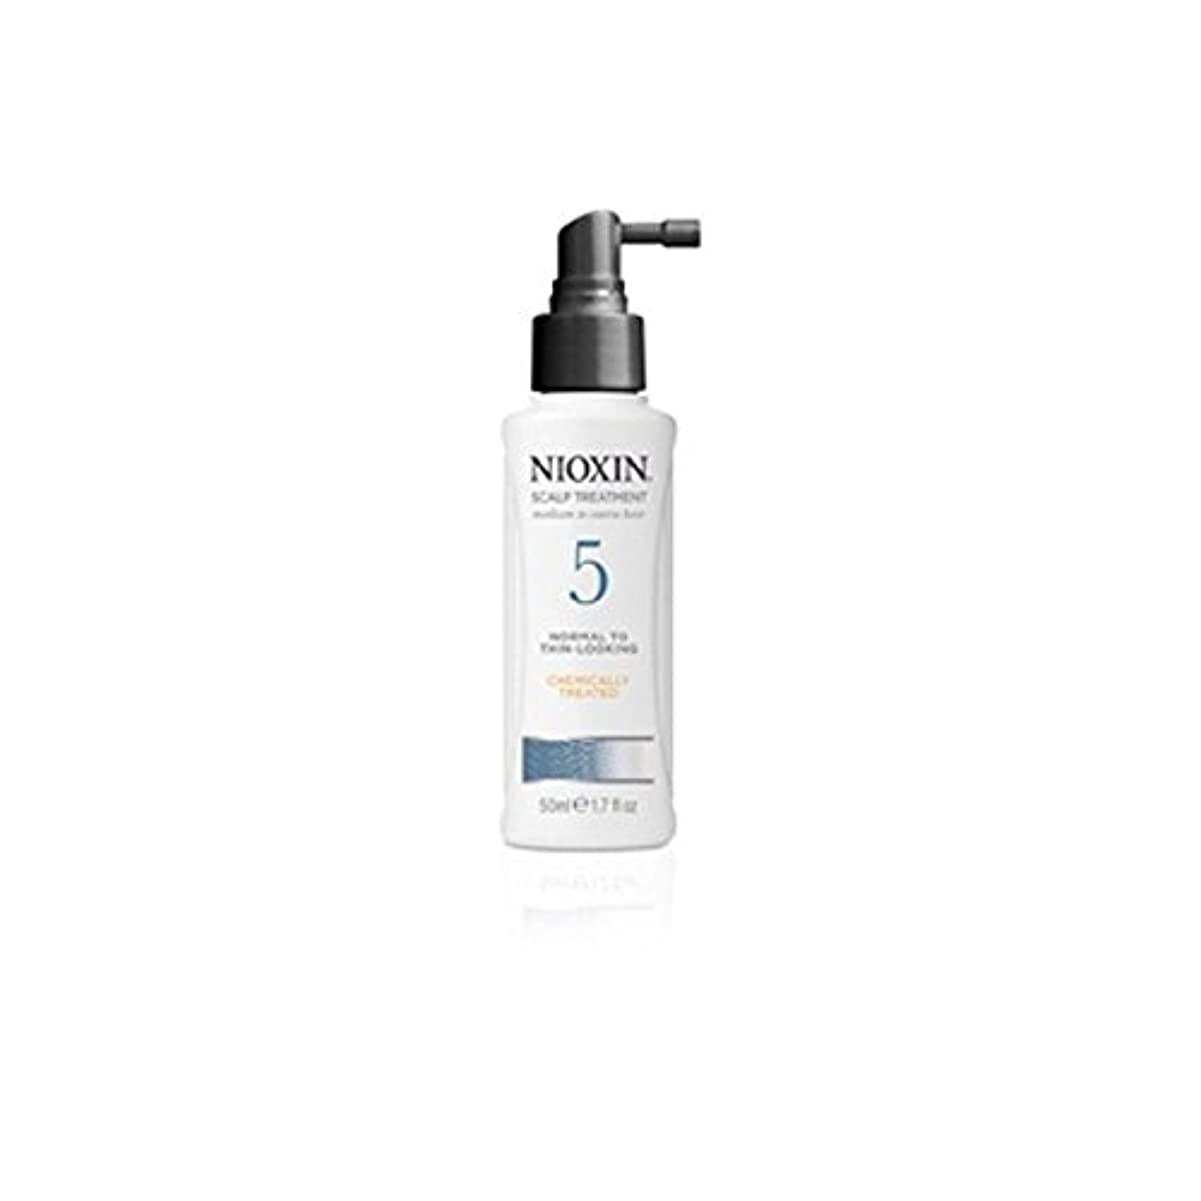 Nioxin System 5 Scalp Treatment For Medium To Coarse, Normal To Thin Looking, Natural And Chemically Treated Hair...